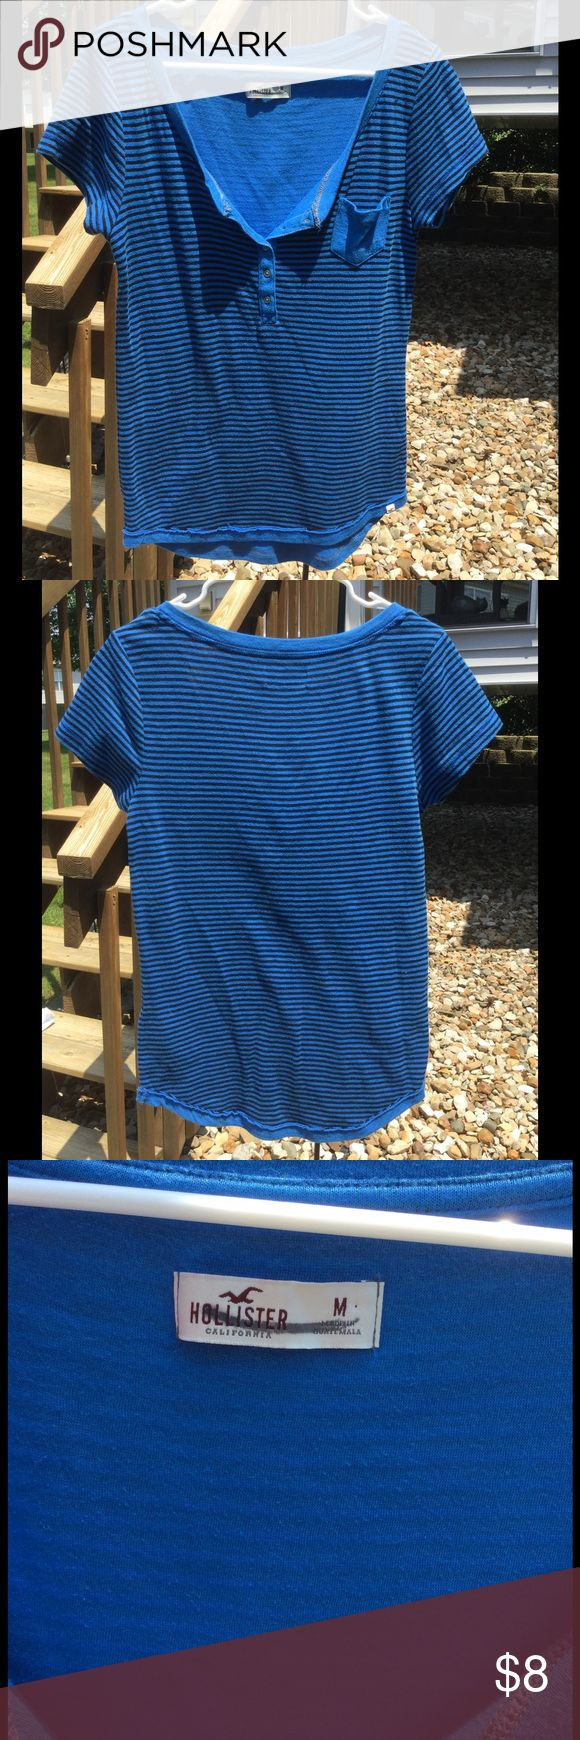 Hollister Blue and Black Striped Top 73% cotton, 26% polyester, and 1% elastane.  Nice summer shirt!  Great with jeans and shorts! Hollister Tops Tees - Short Sleeve